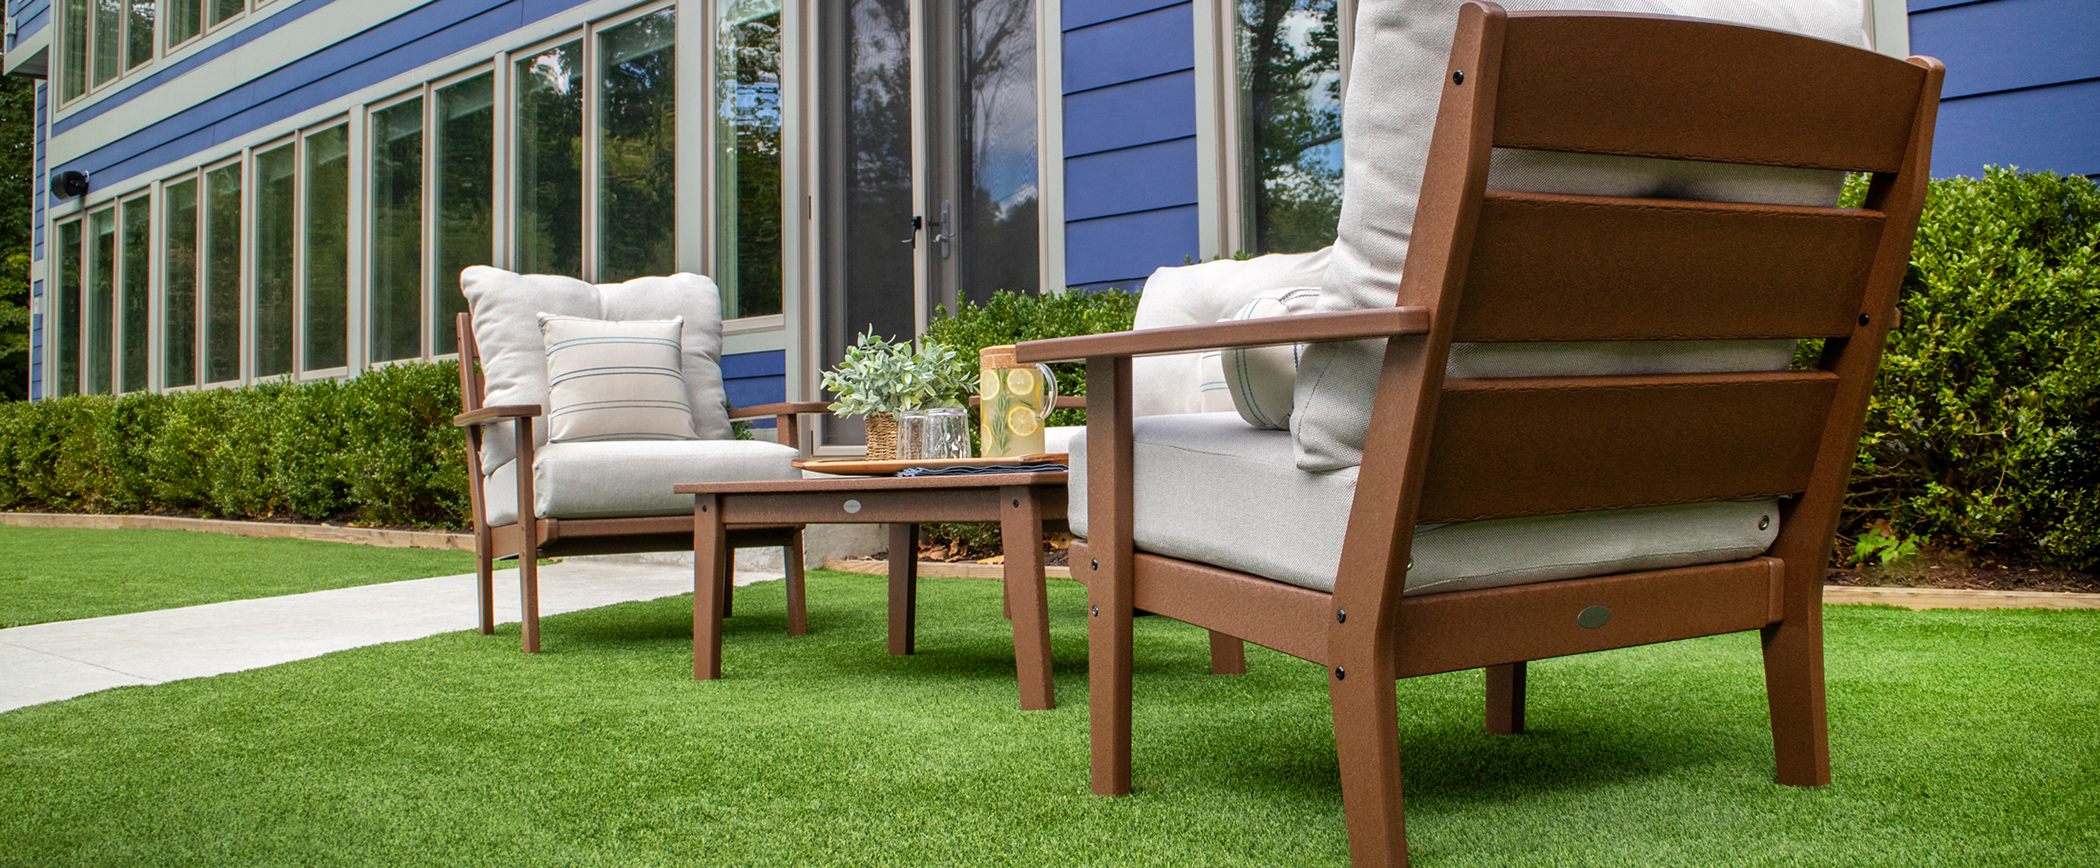 Buying The Most Comfortable Patio Furniture Polywood Blog